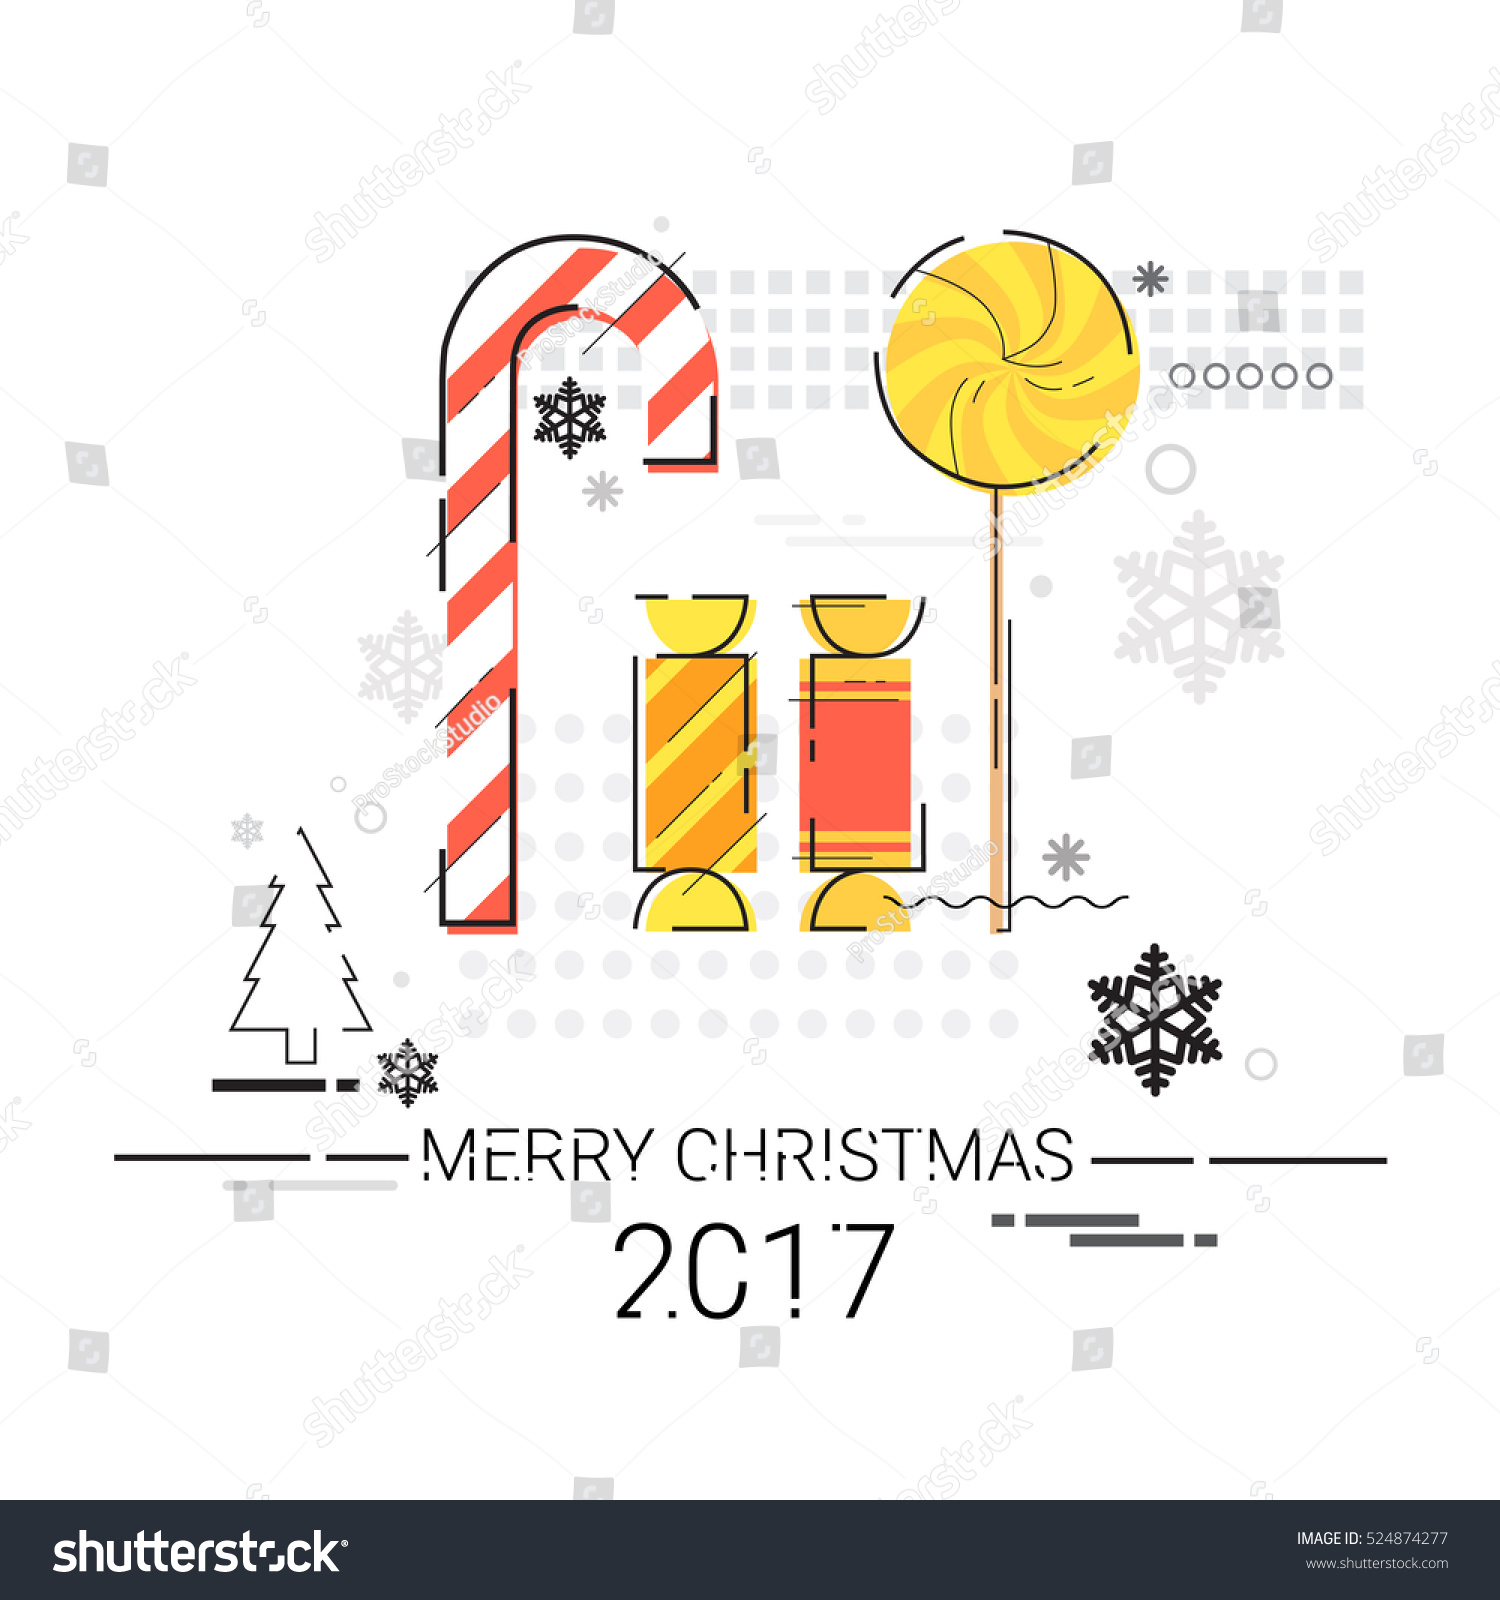 Easy Year To Travel On Christmas: Merry Christmas Happy New Year Simple Line Sketch Banner